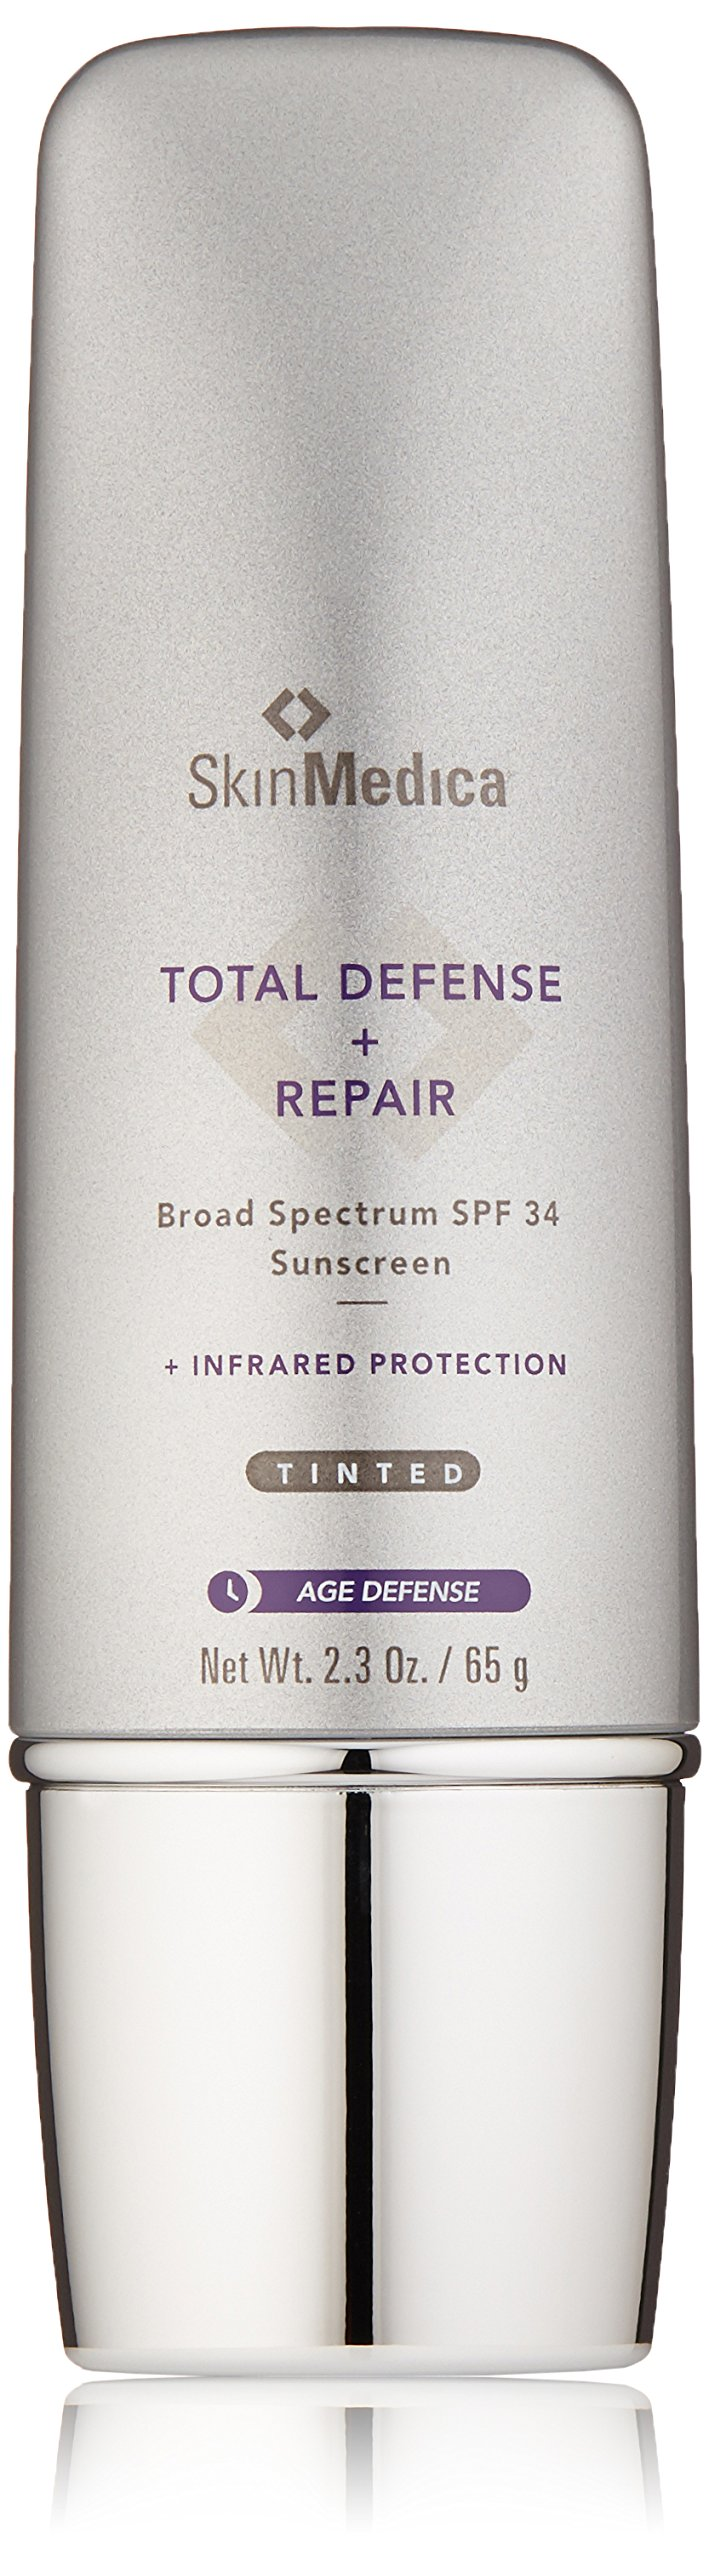 SkinMedica Total Defense Plus Repair SPF 34 Sunscreen Tinted, 2.3 oz.